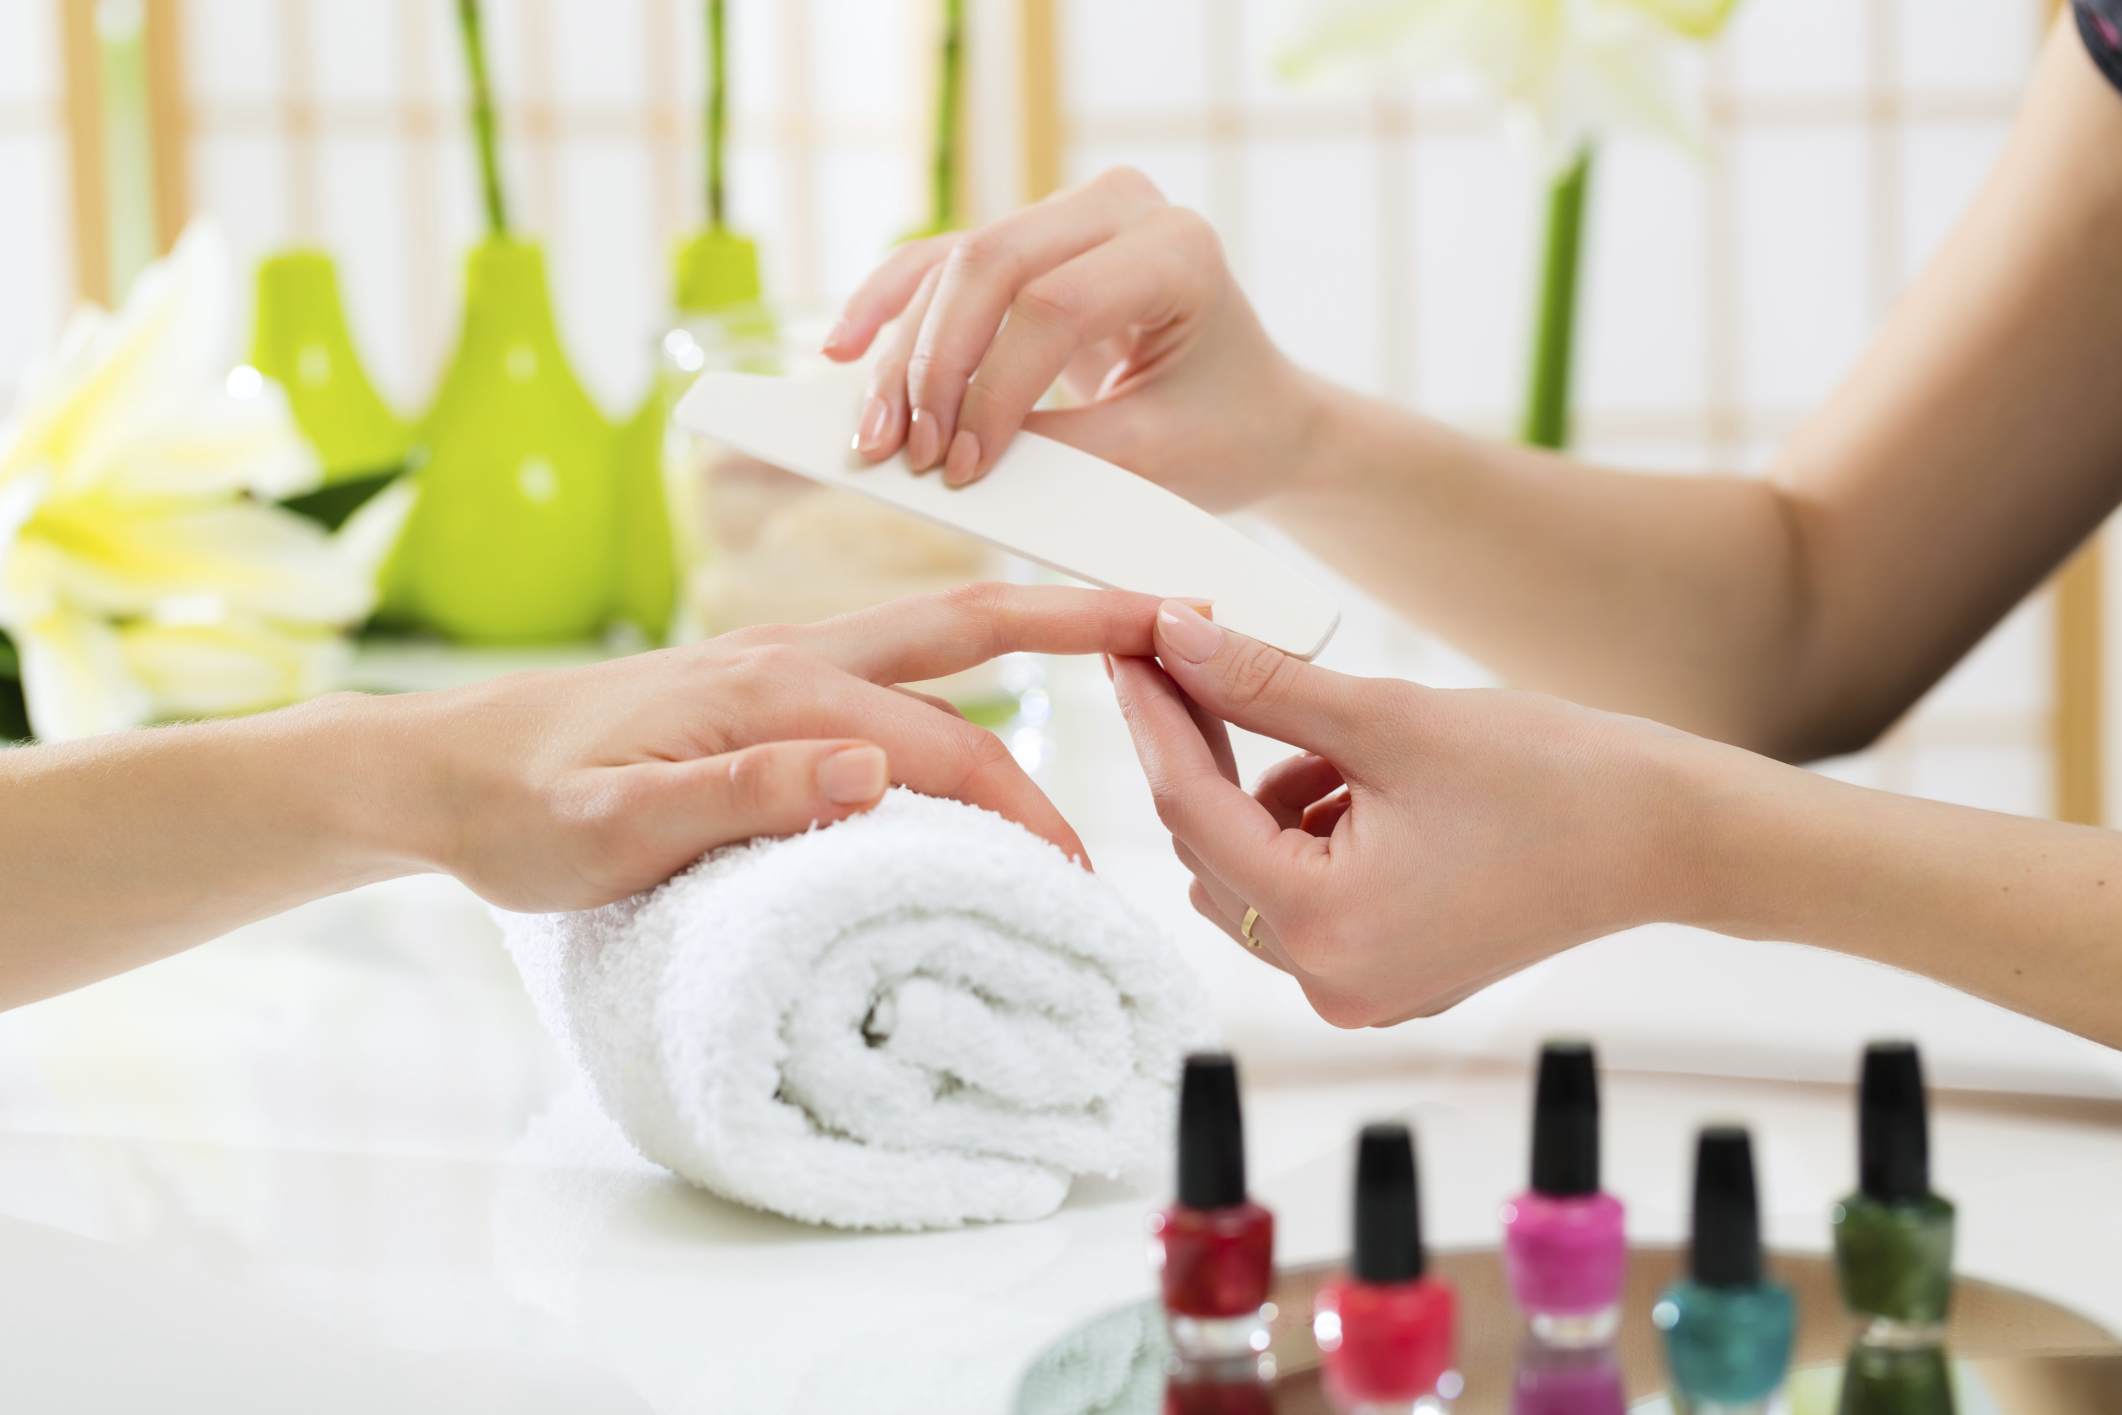 how safe is the nail salon industry in chicago